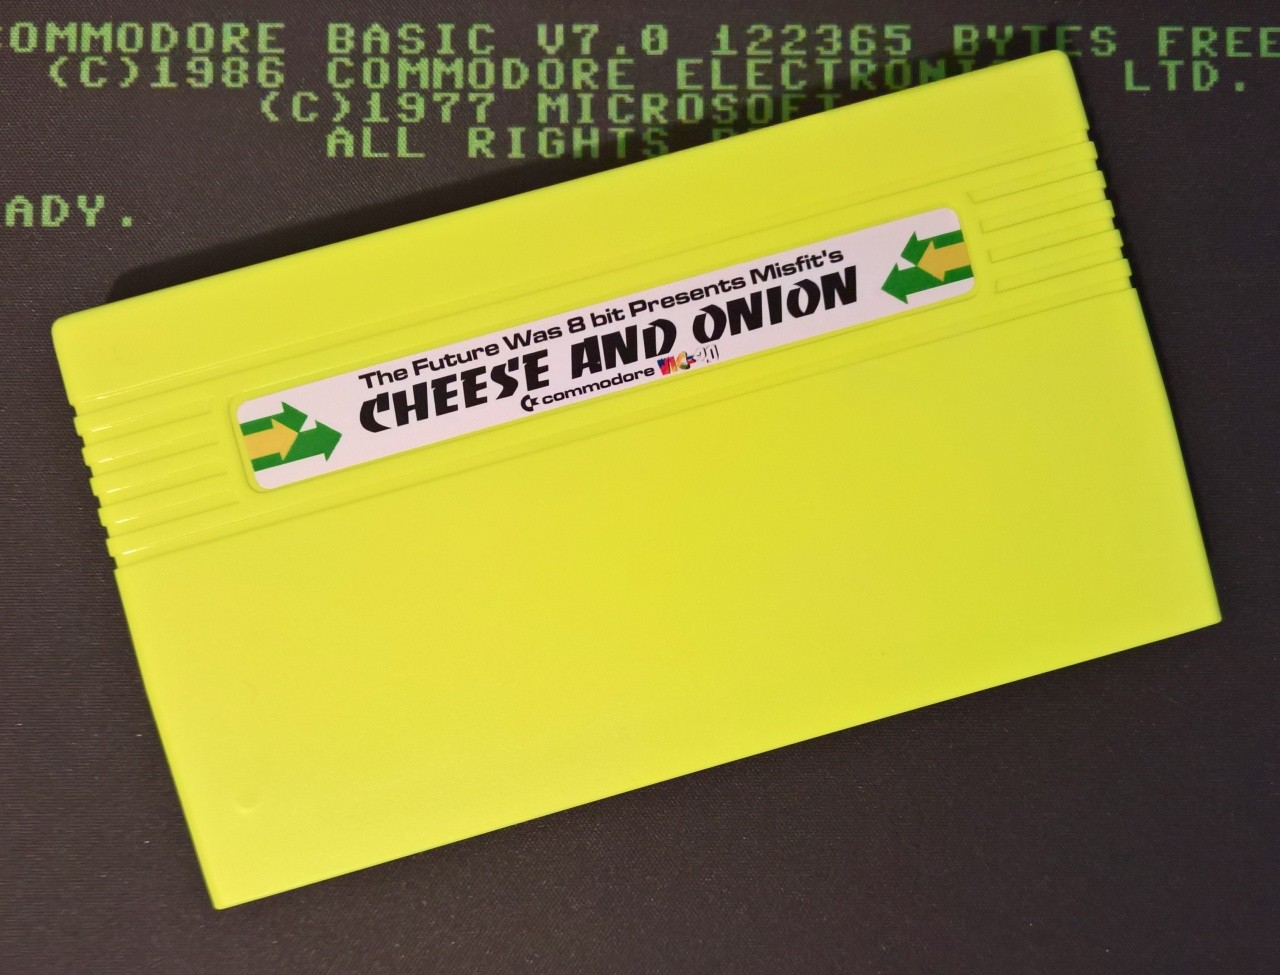 Cheese and Onion - Commodore VIC20